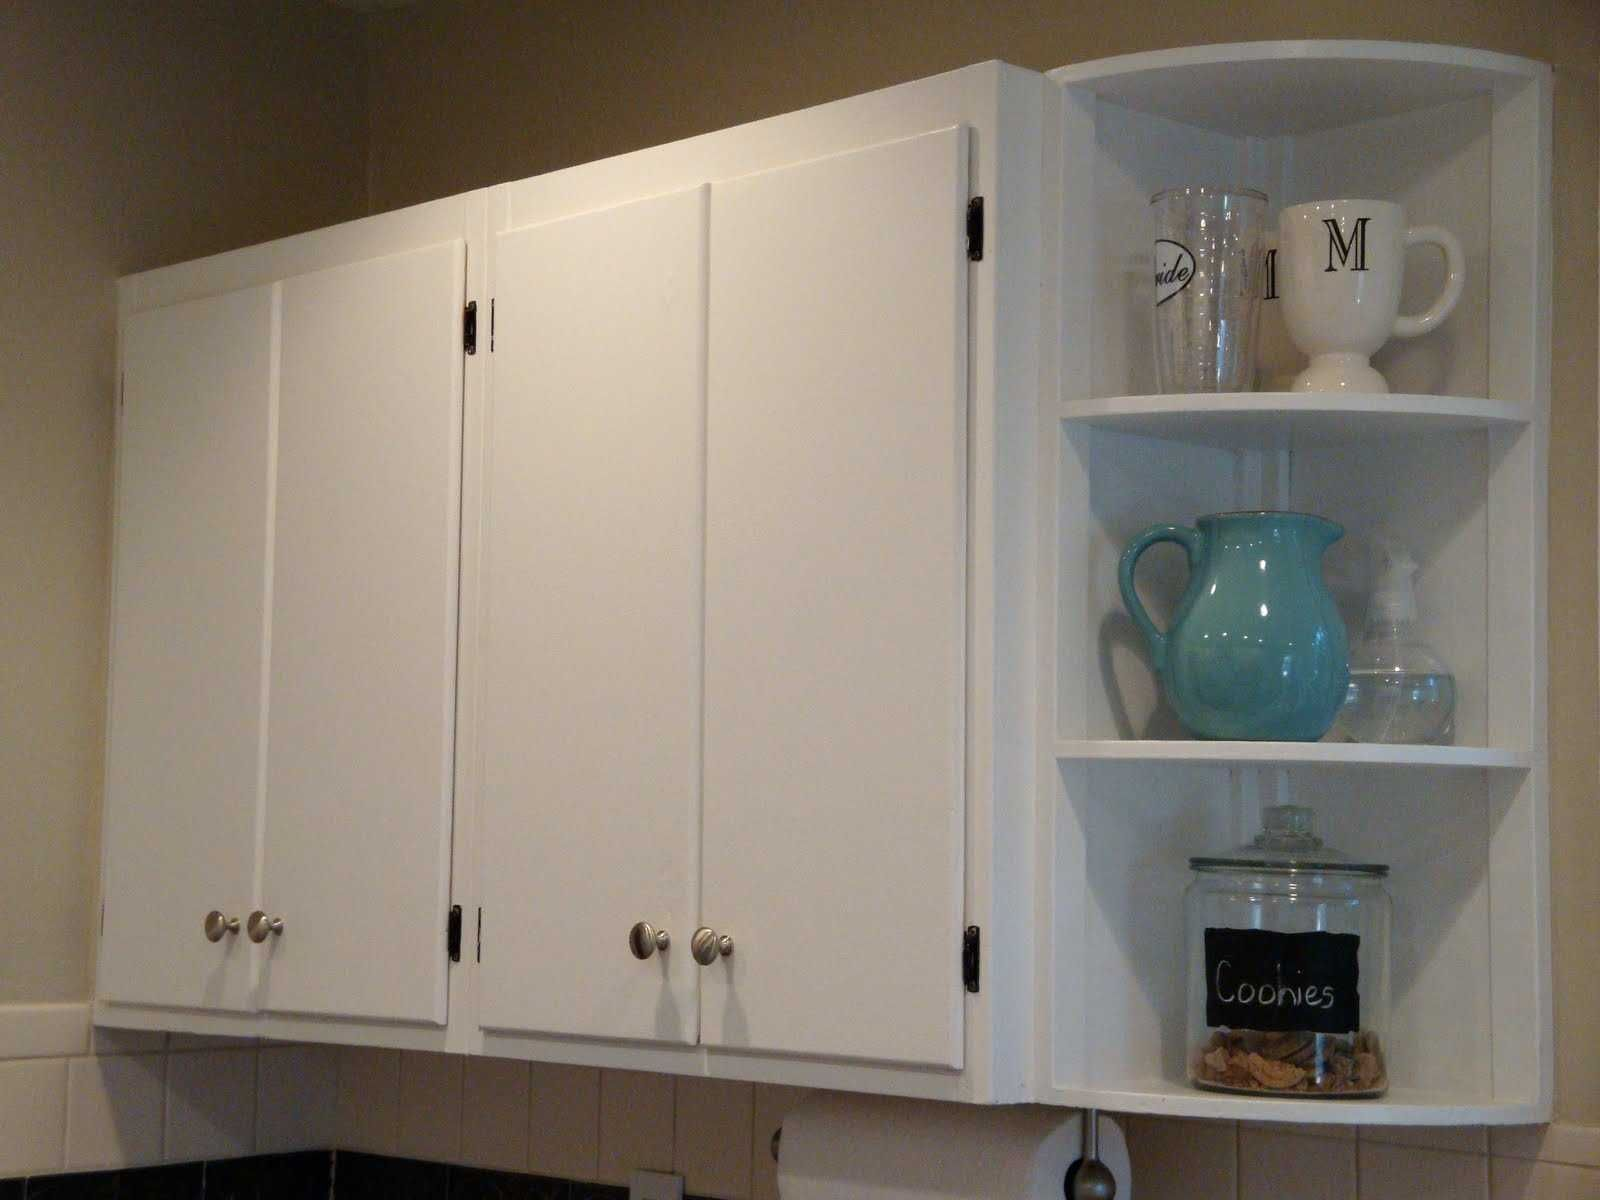 Diy refinish kitchen cabinets – Having lavish cupboards clinging ...